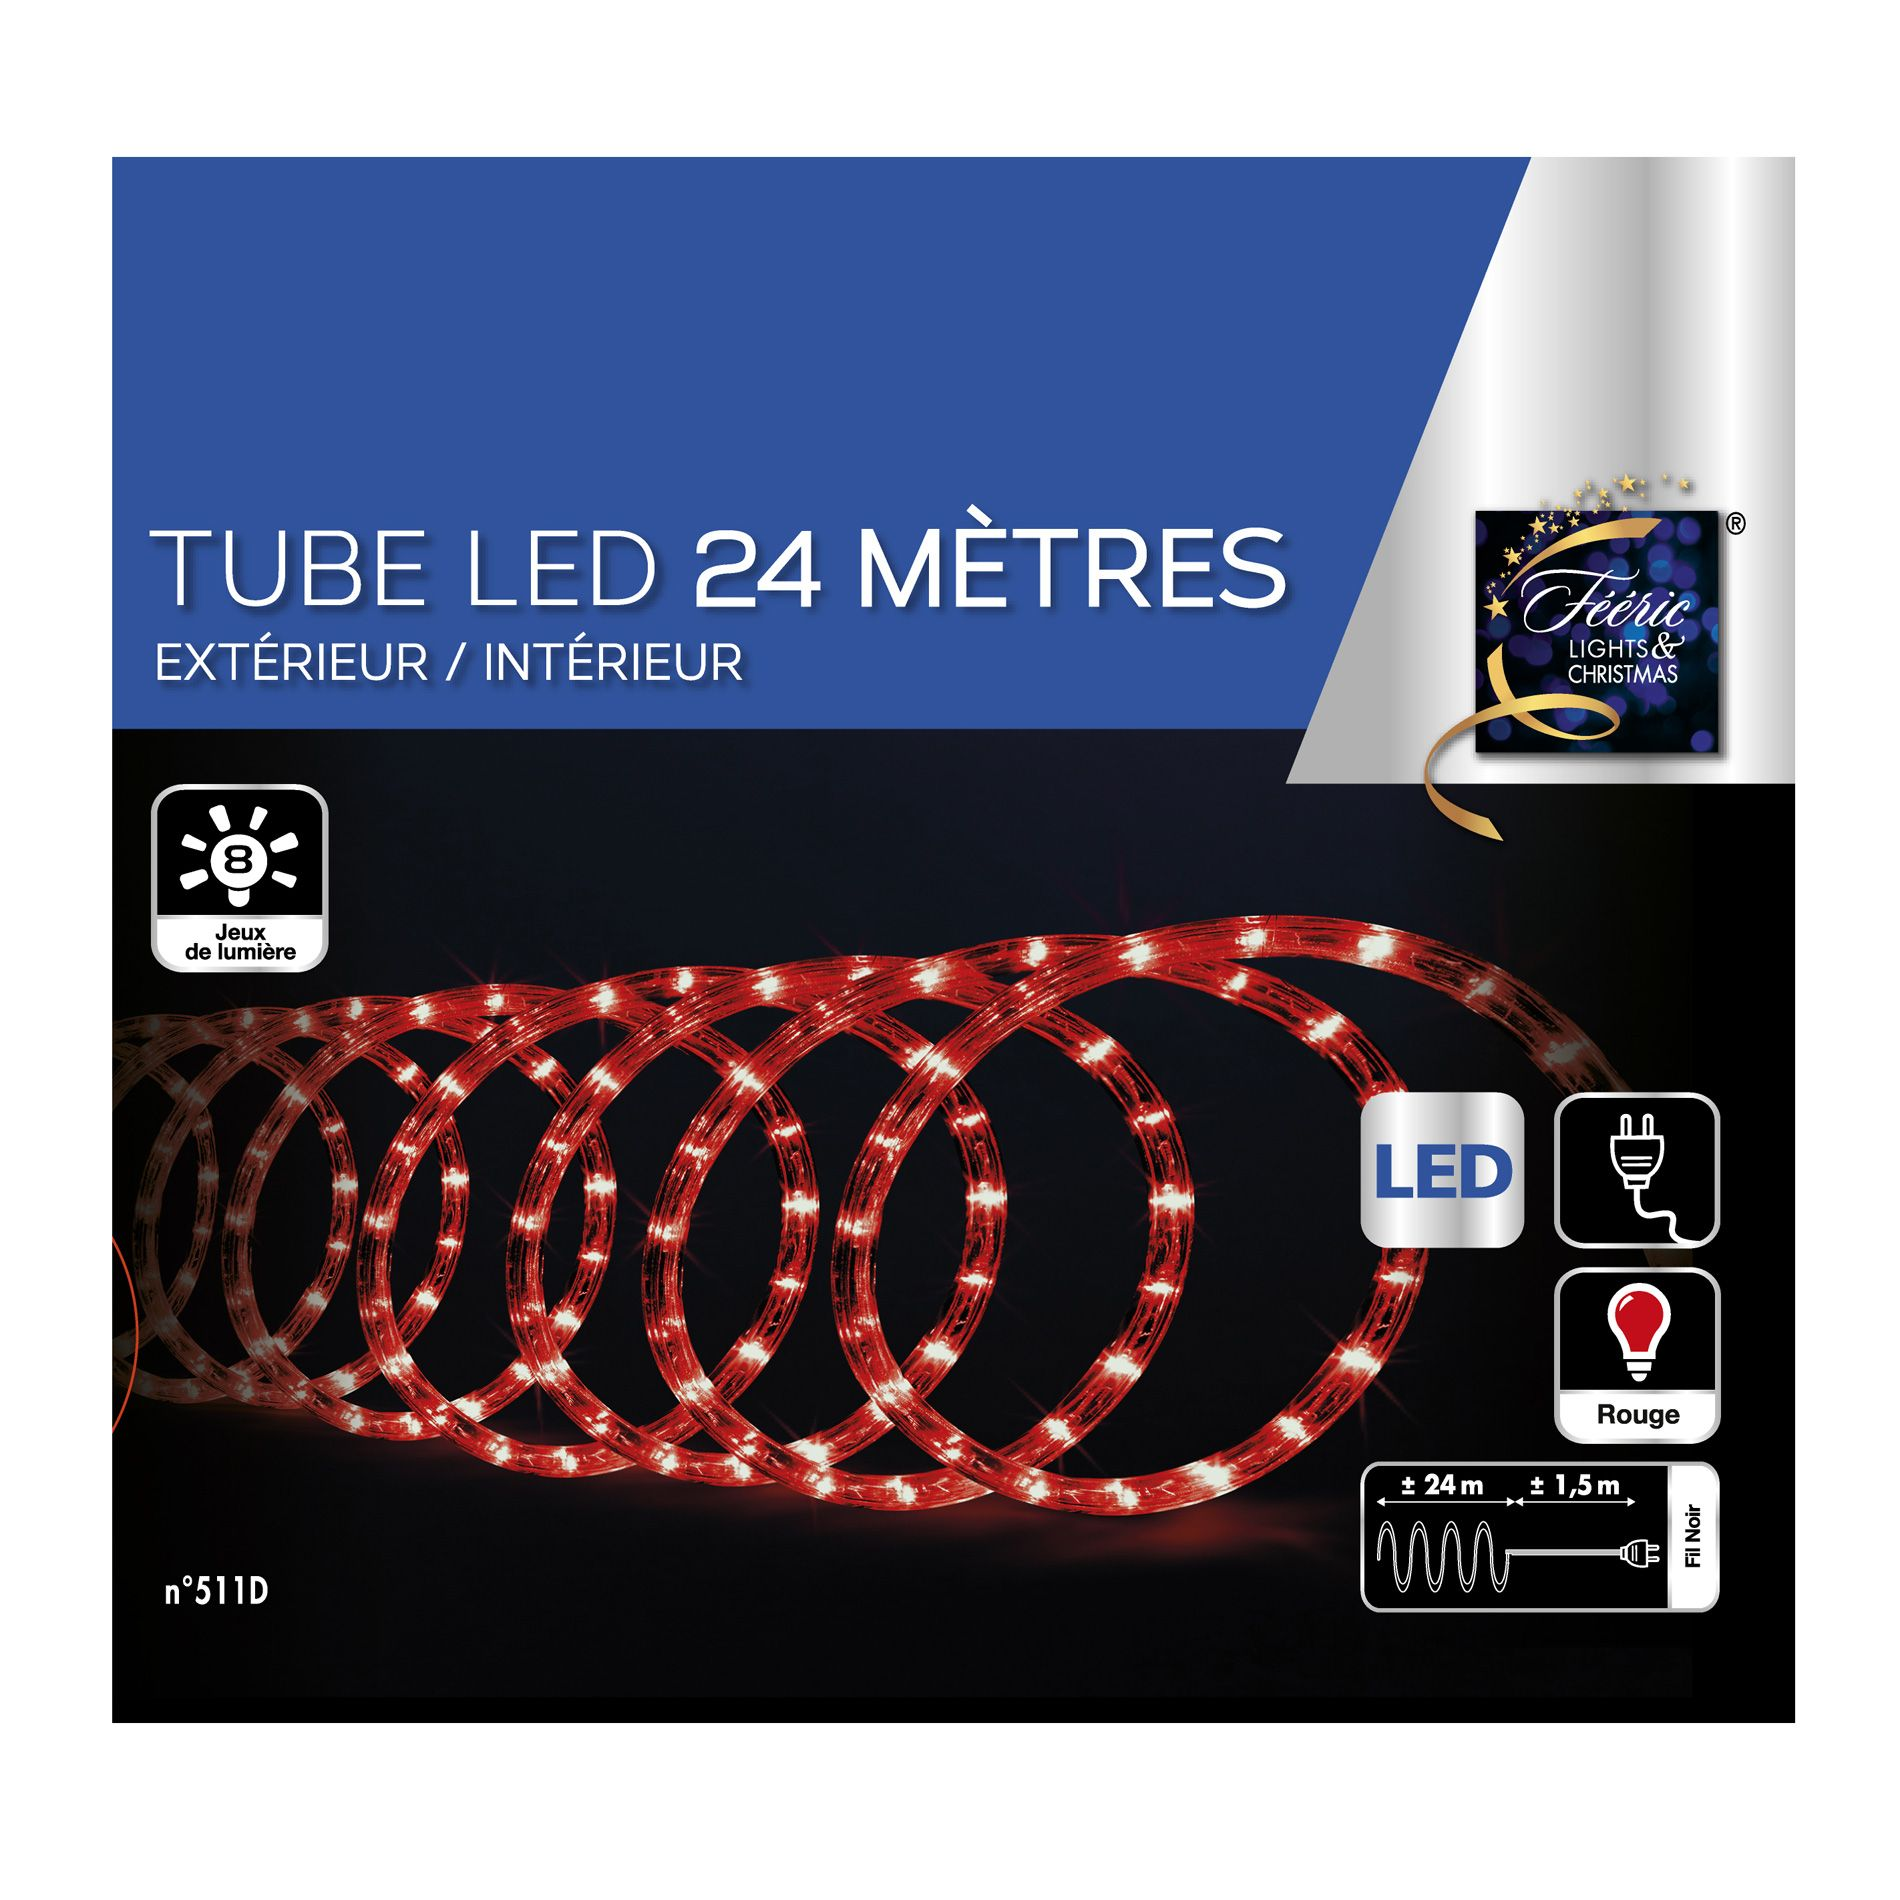 tube lumineux 24 m rouge 432 led guirlande lumineuse eminza. Black Bedroom Furniture Sets. Home Design Ideas